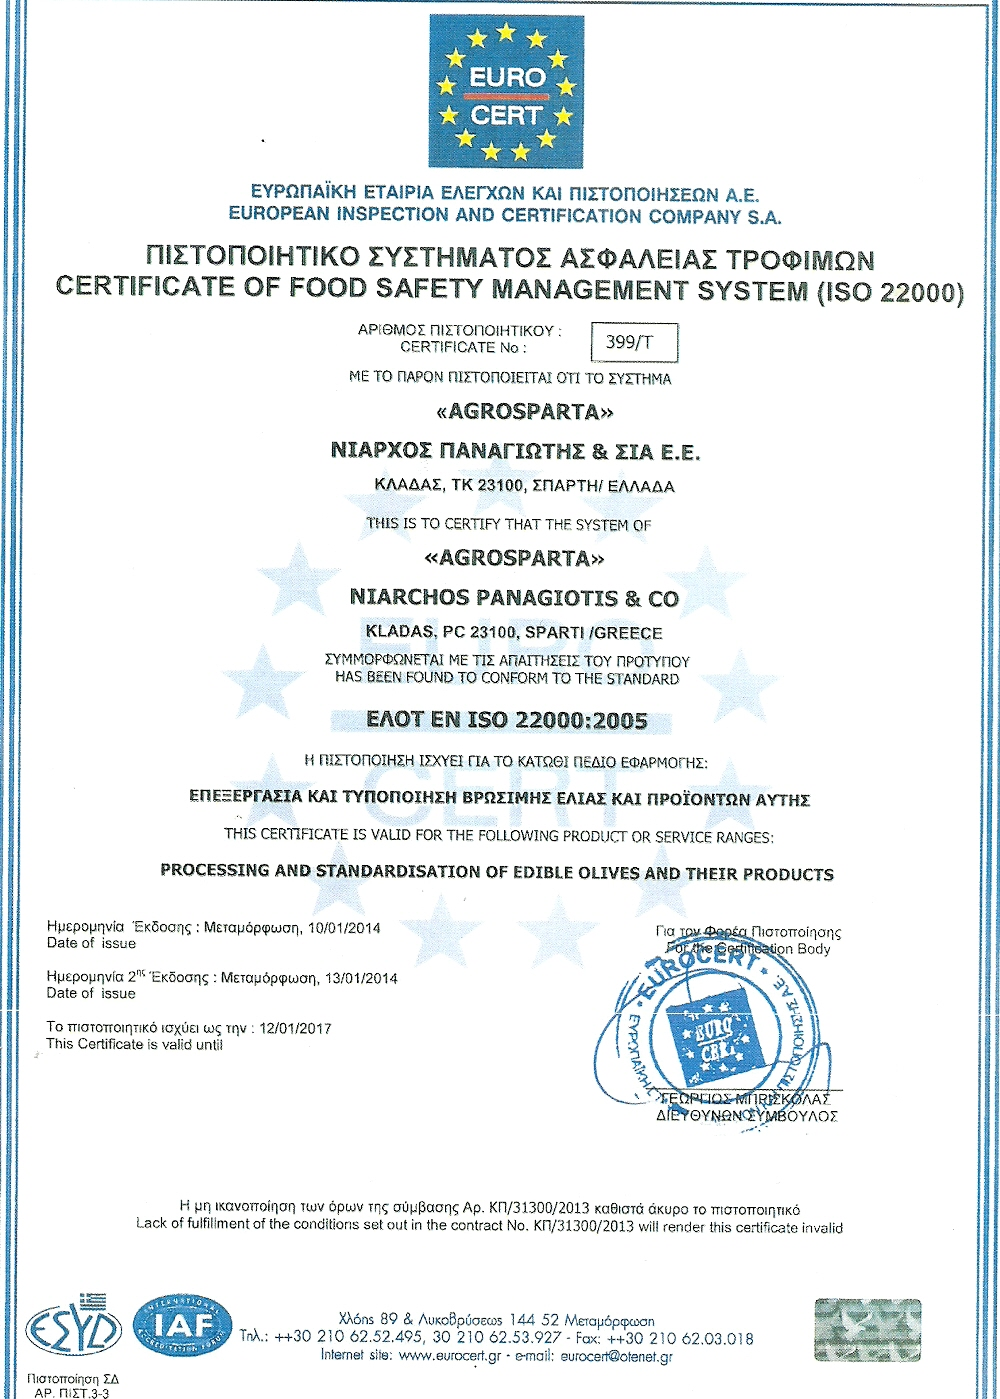 Certificate of food safety management system iso 22000 certificate of food safety management system iso 22000 xflitez Choice Image